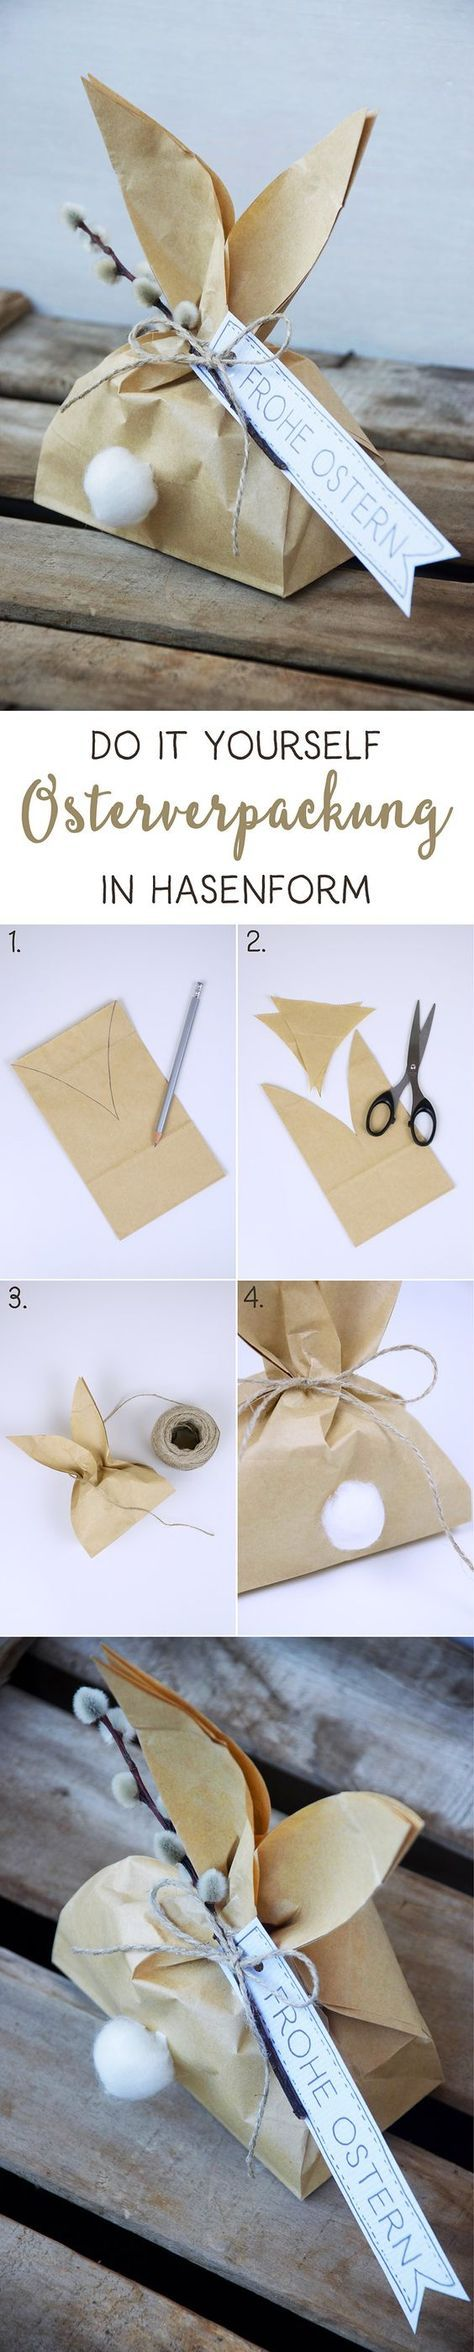 DIY // Osterverpackung in Hasenform